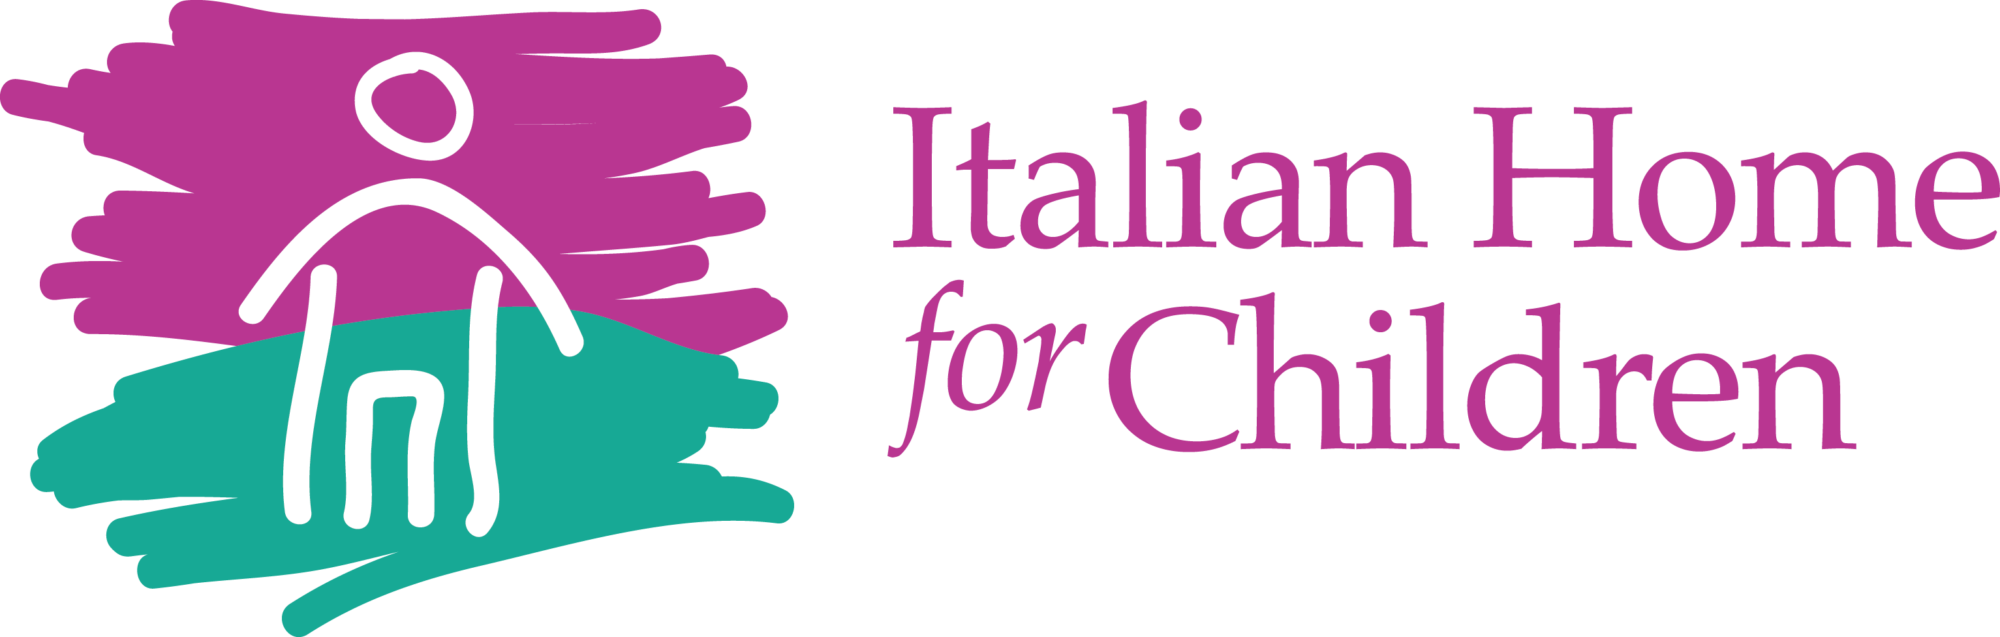 Italian Home for Children Logo Horizontal